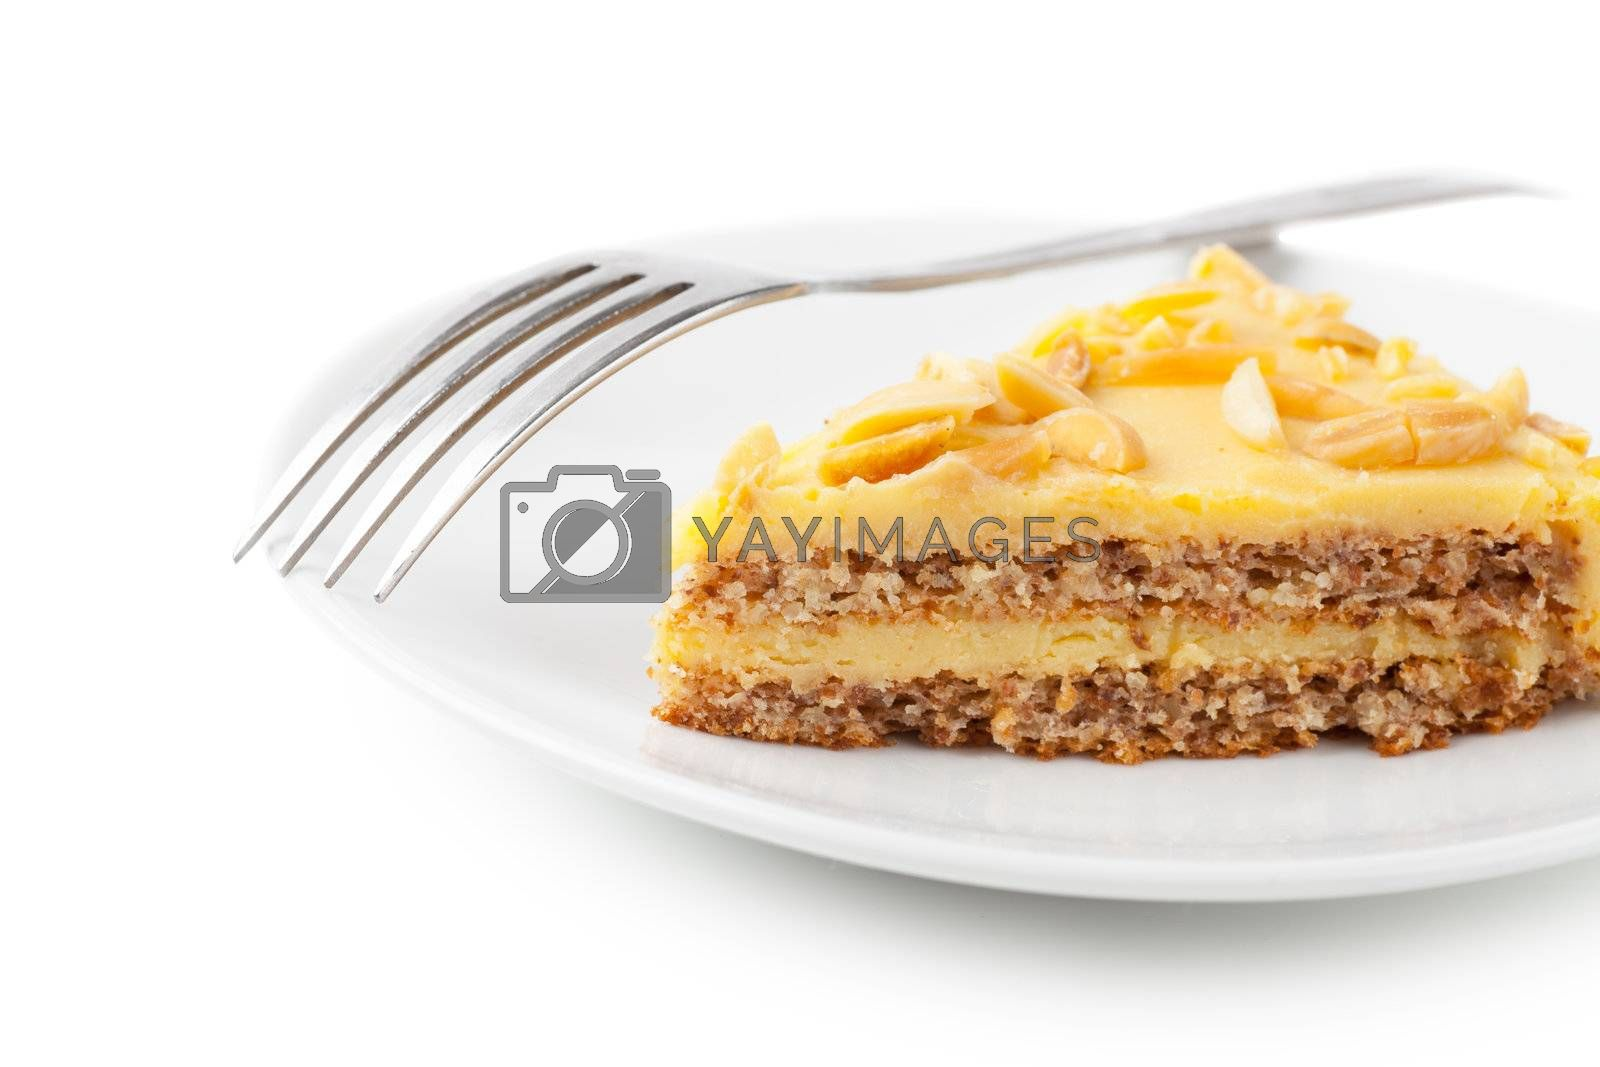 Closeup view of piece of sweet pie on a white plate